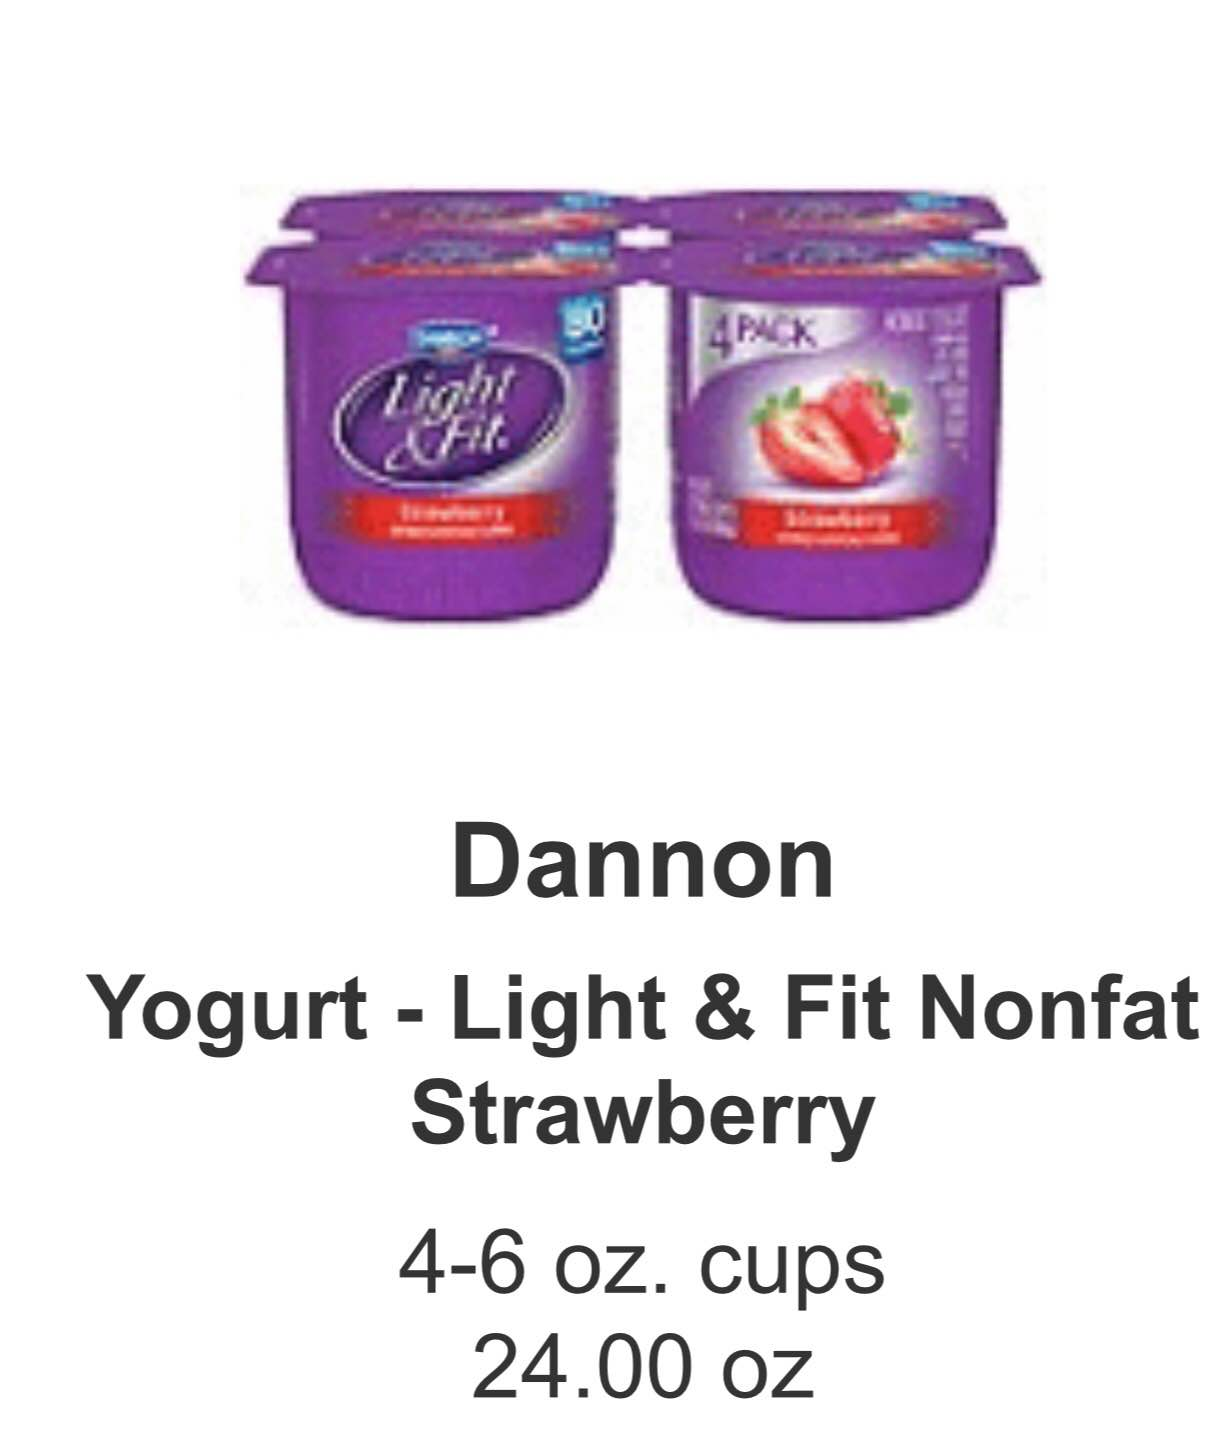 photograph regarding Yogurt Coupons Printable called Dannon greek yogurt coupon codes printable 2018 : Black friday